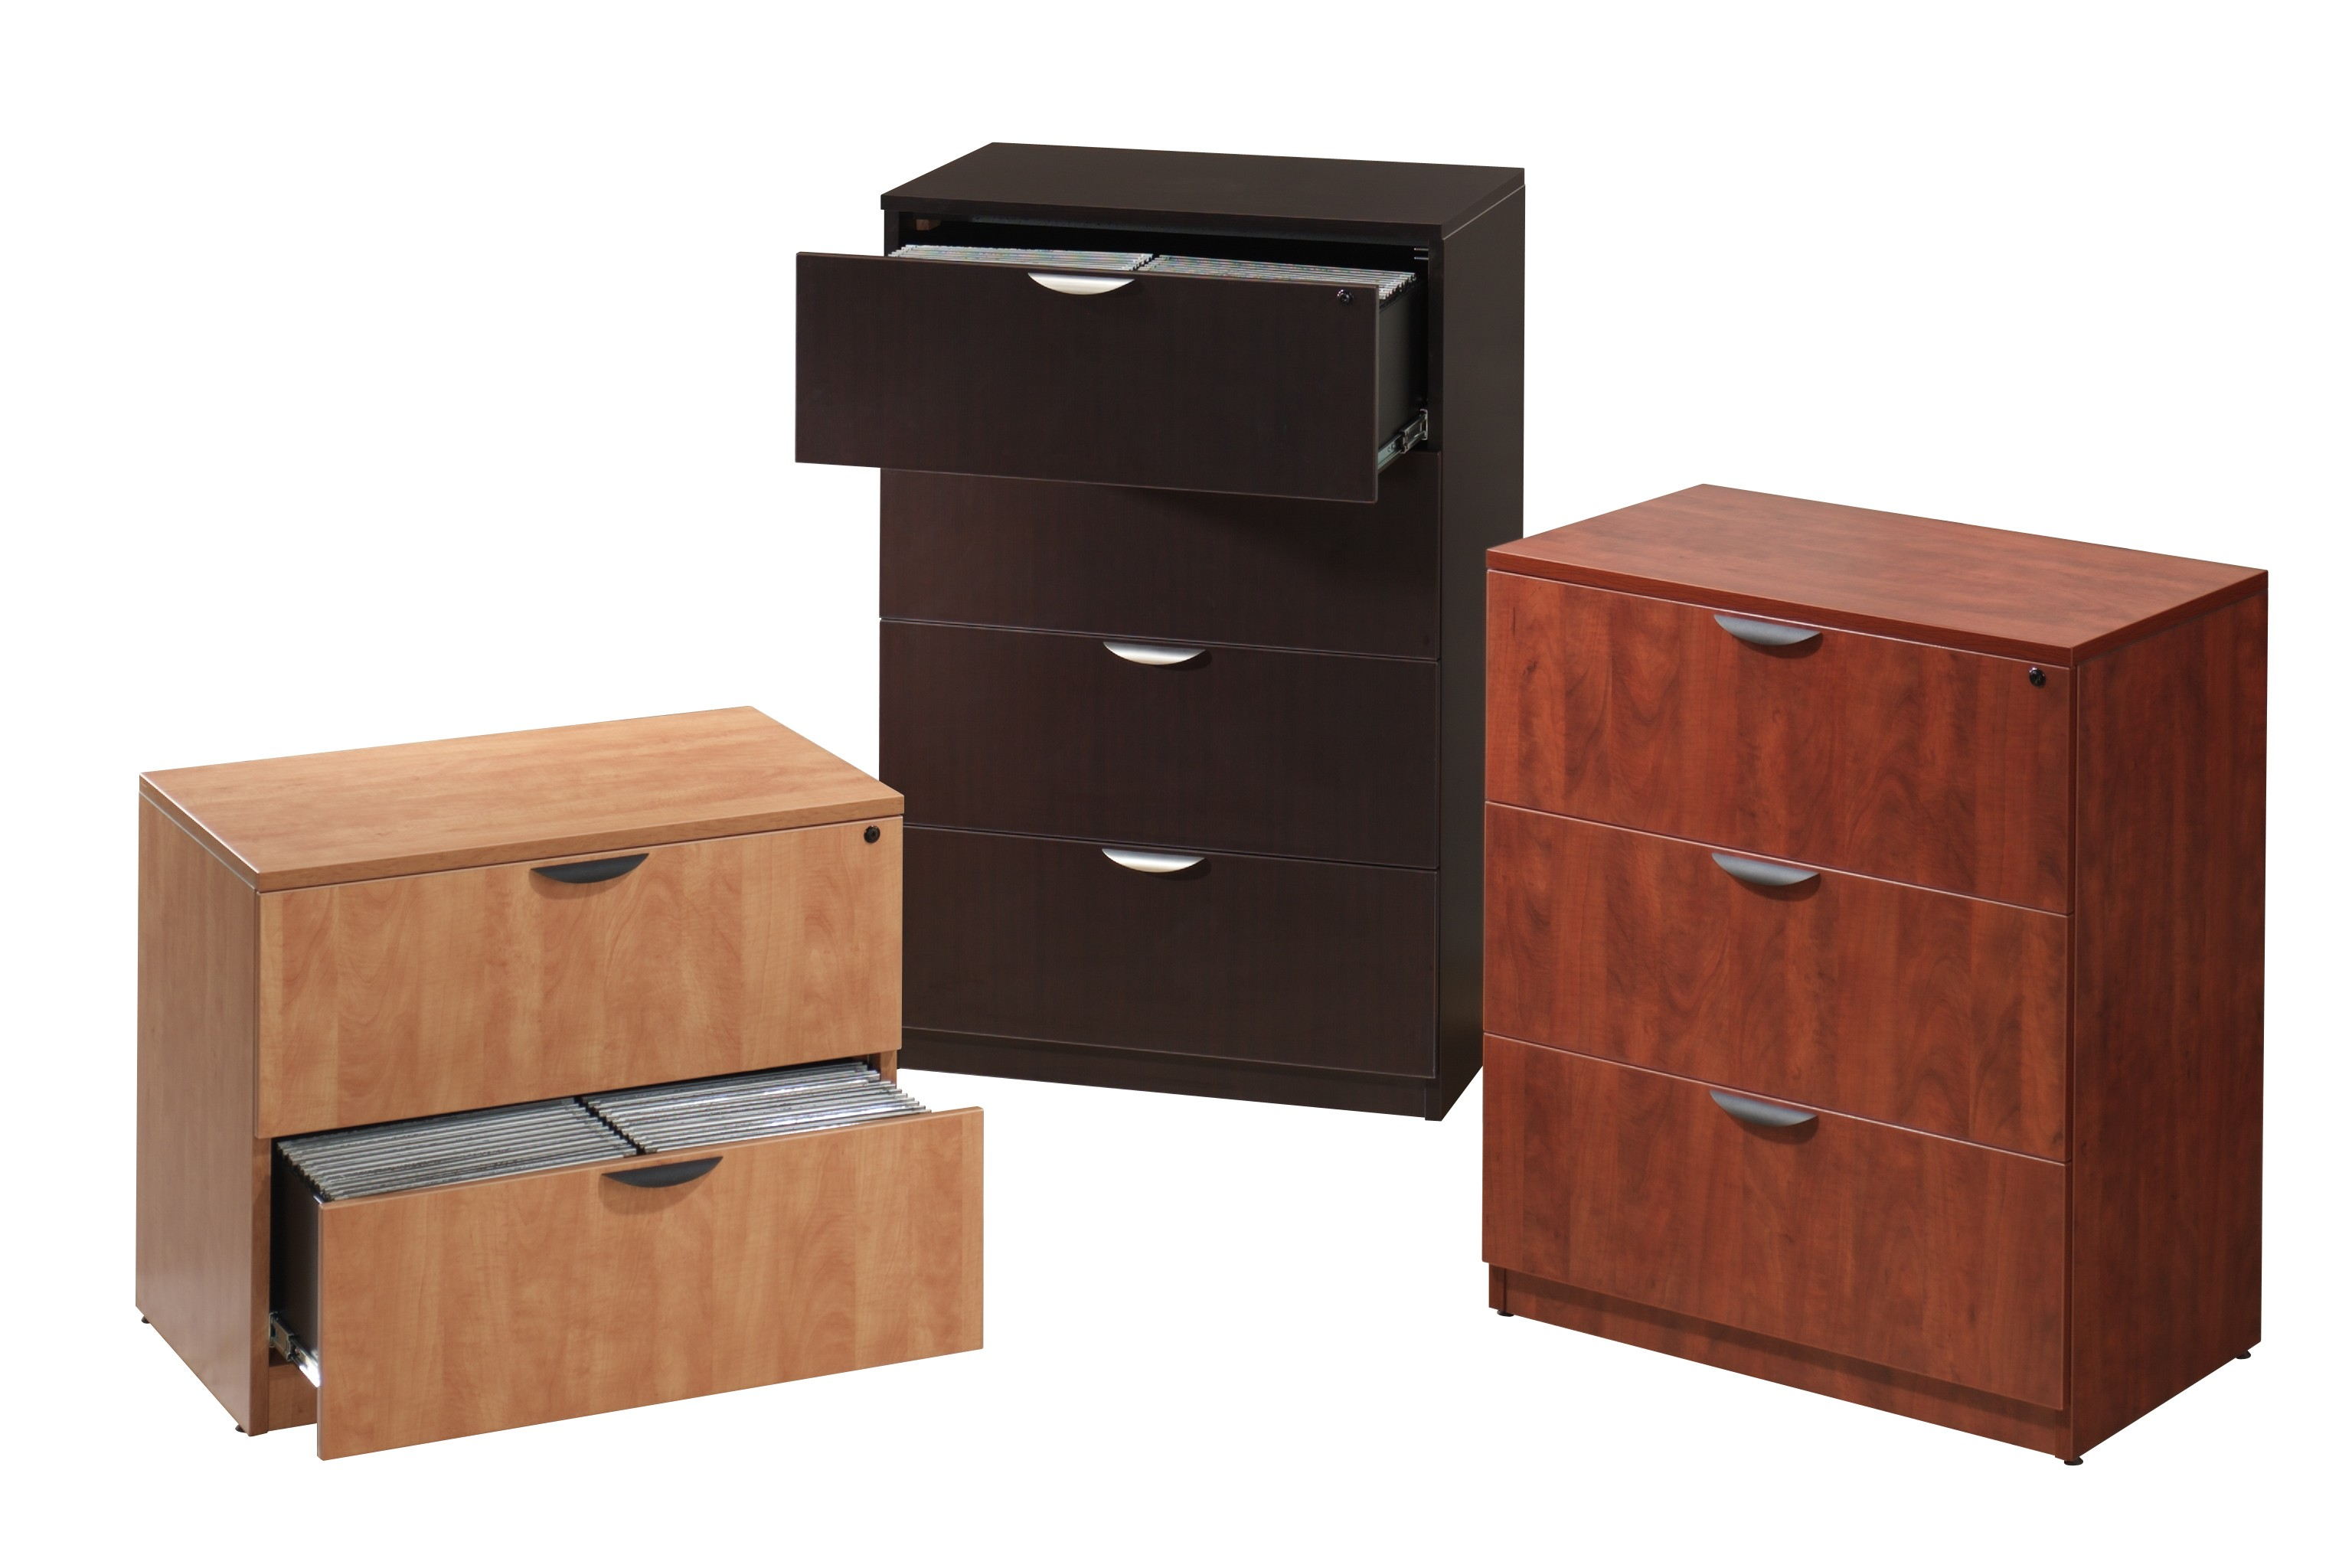 Incredible California Workplace Lateral Files Storage Files Home Interior And Landscaping Oversignezvosmurscom